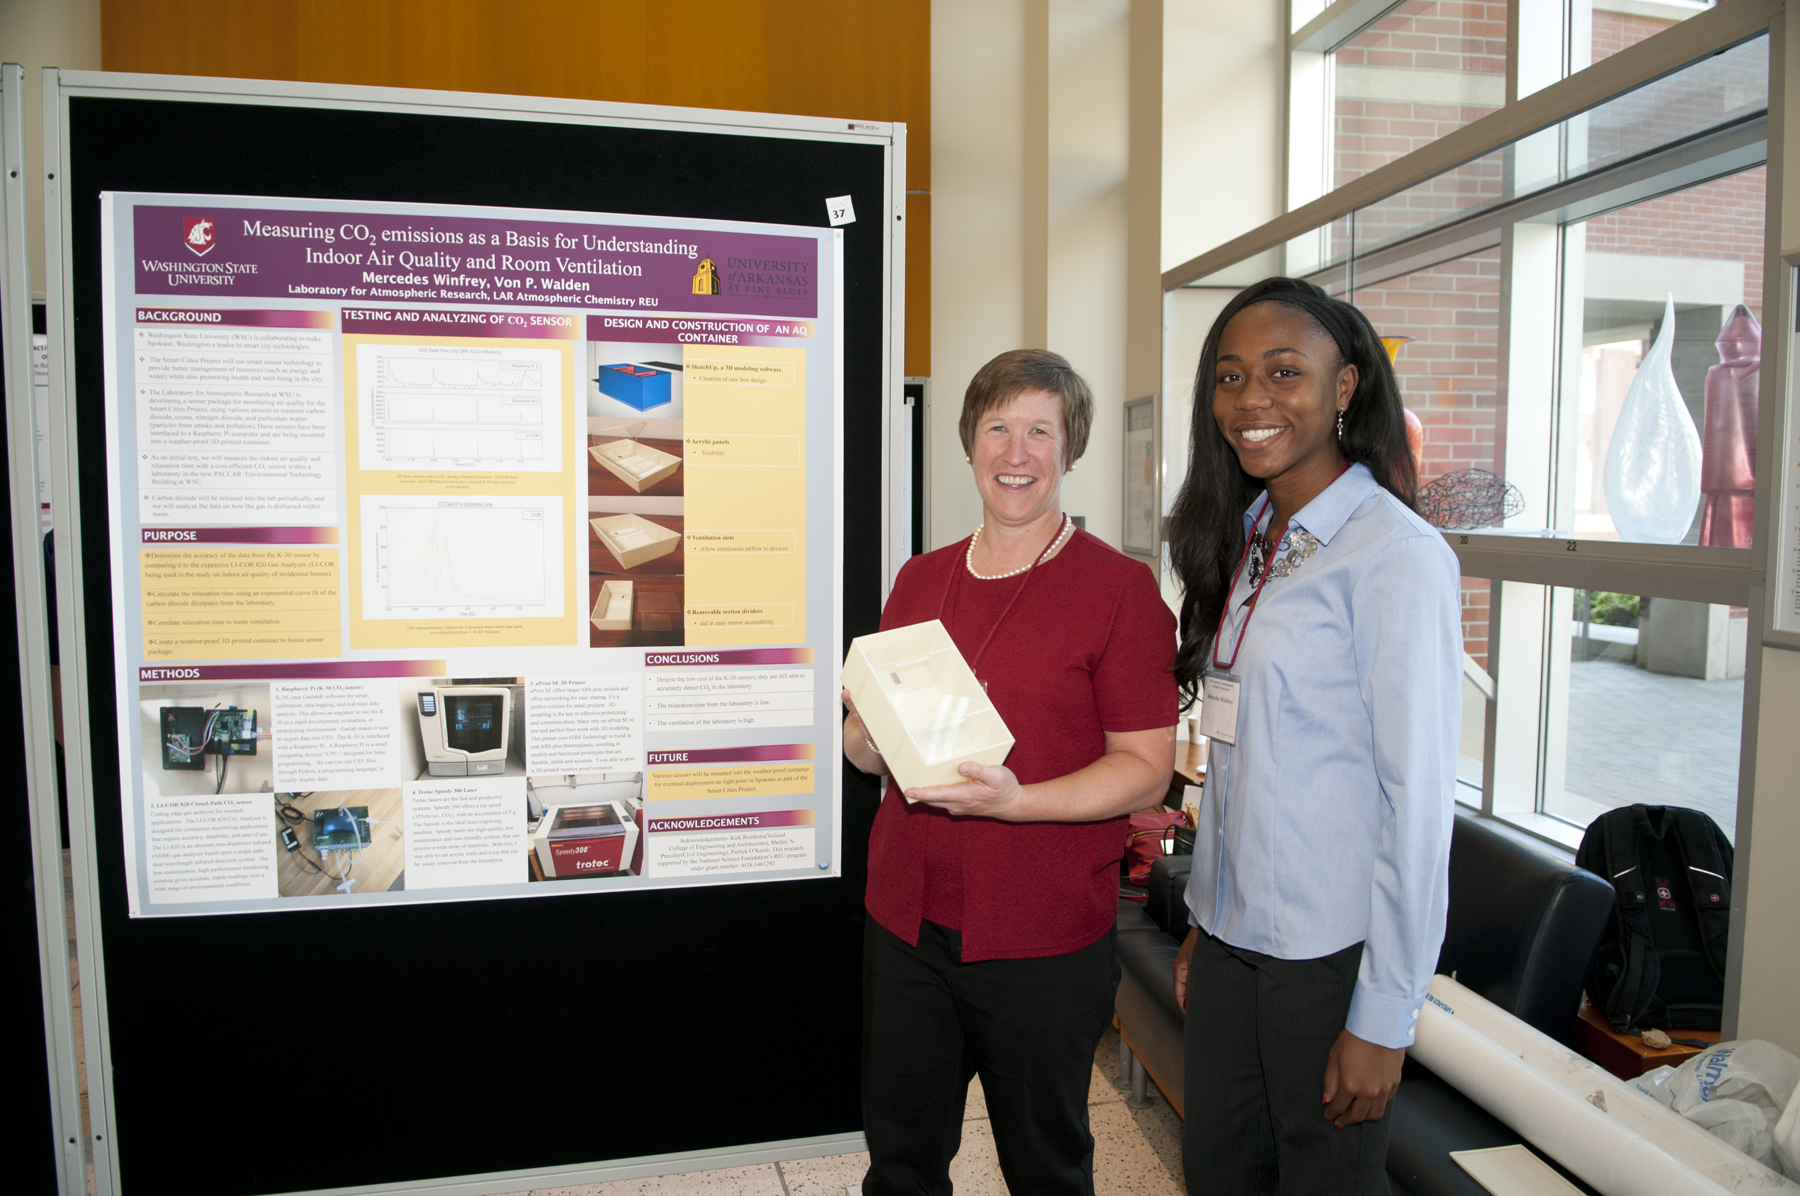 Shelley Pressley and Mercedes Winfrey pose next to a research poster.